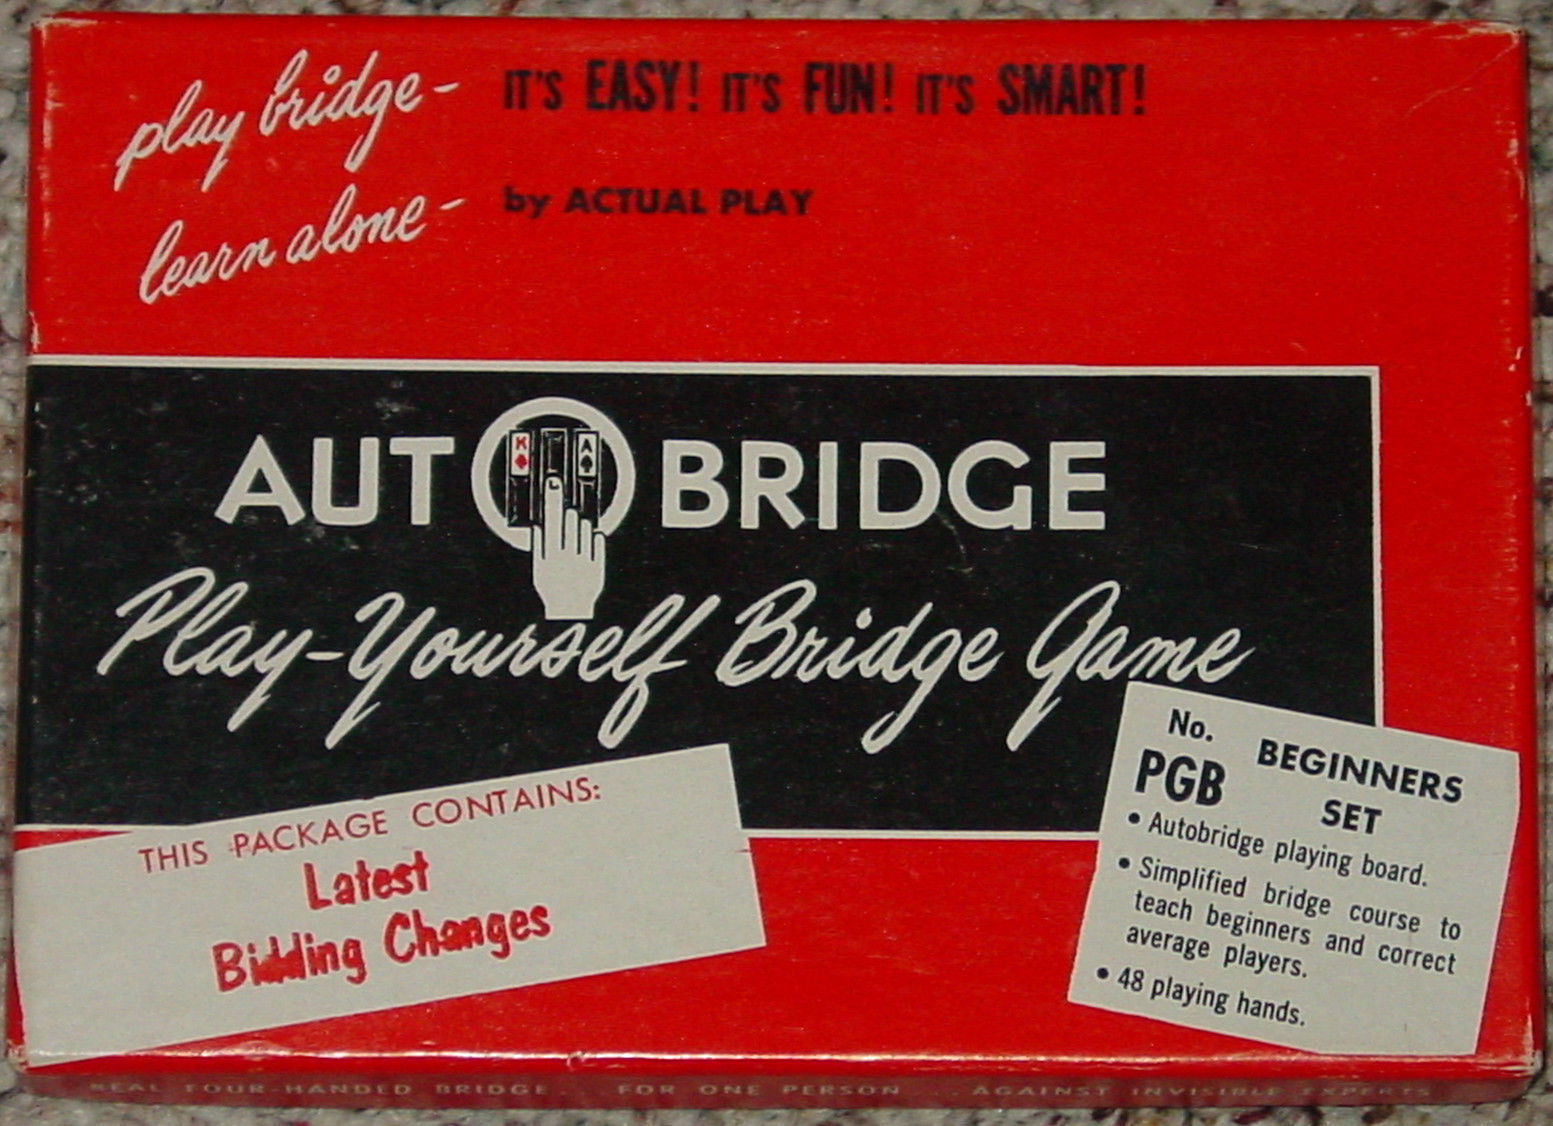 Auto Bridge Play Yourself Bridge Game Pgb Beginners Set